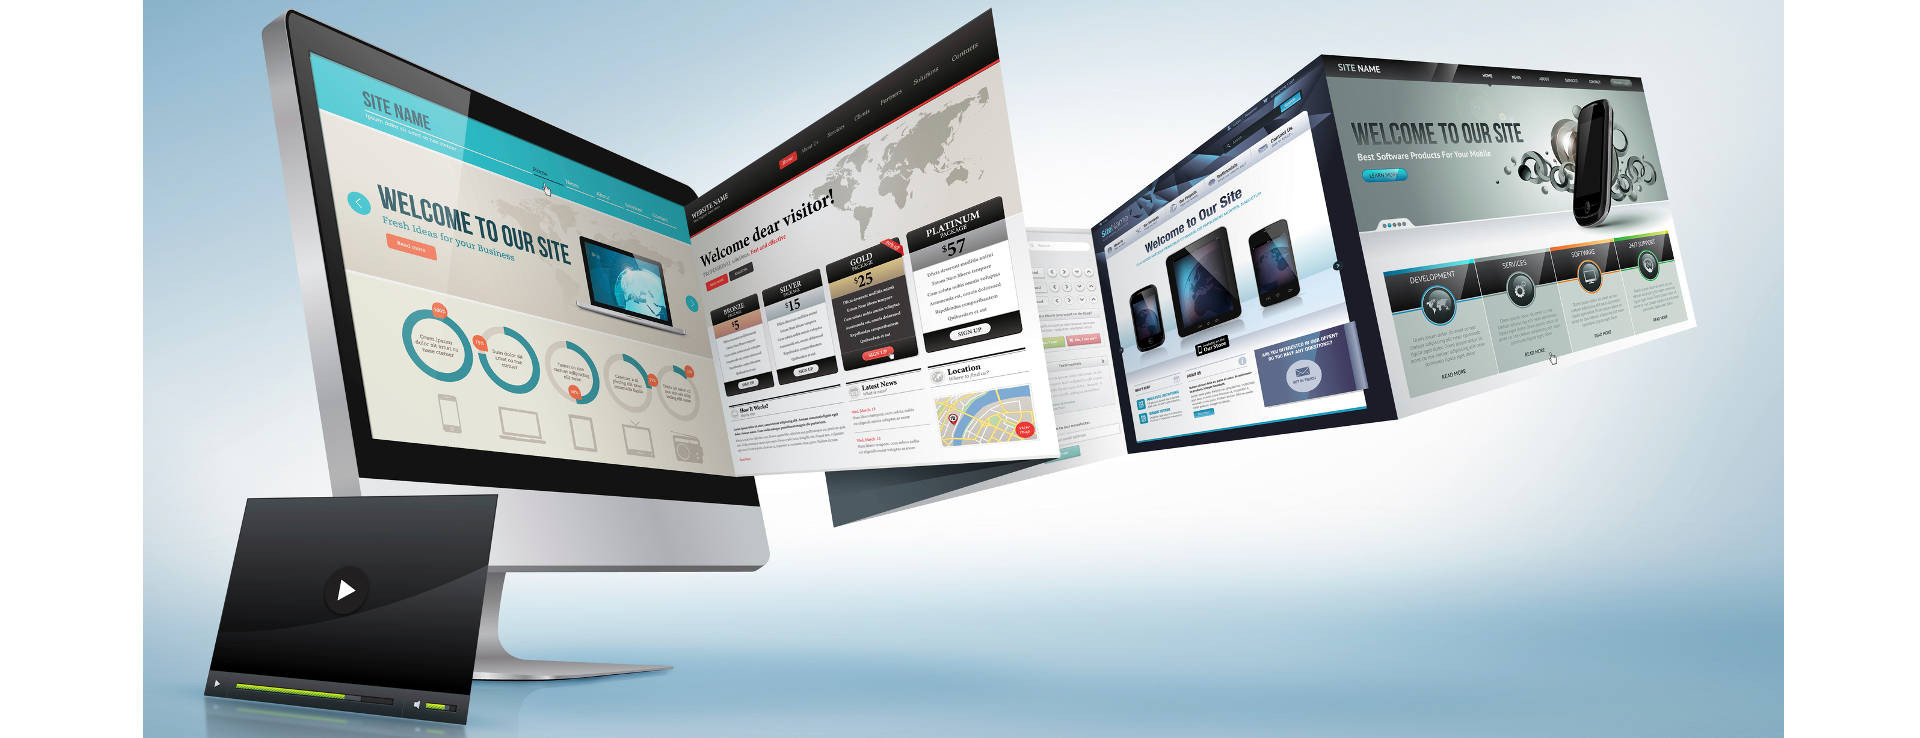 Best Used Macs for Web Designers and Developers